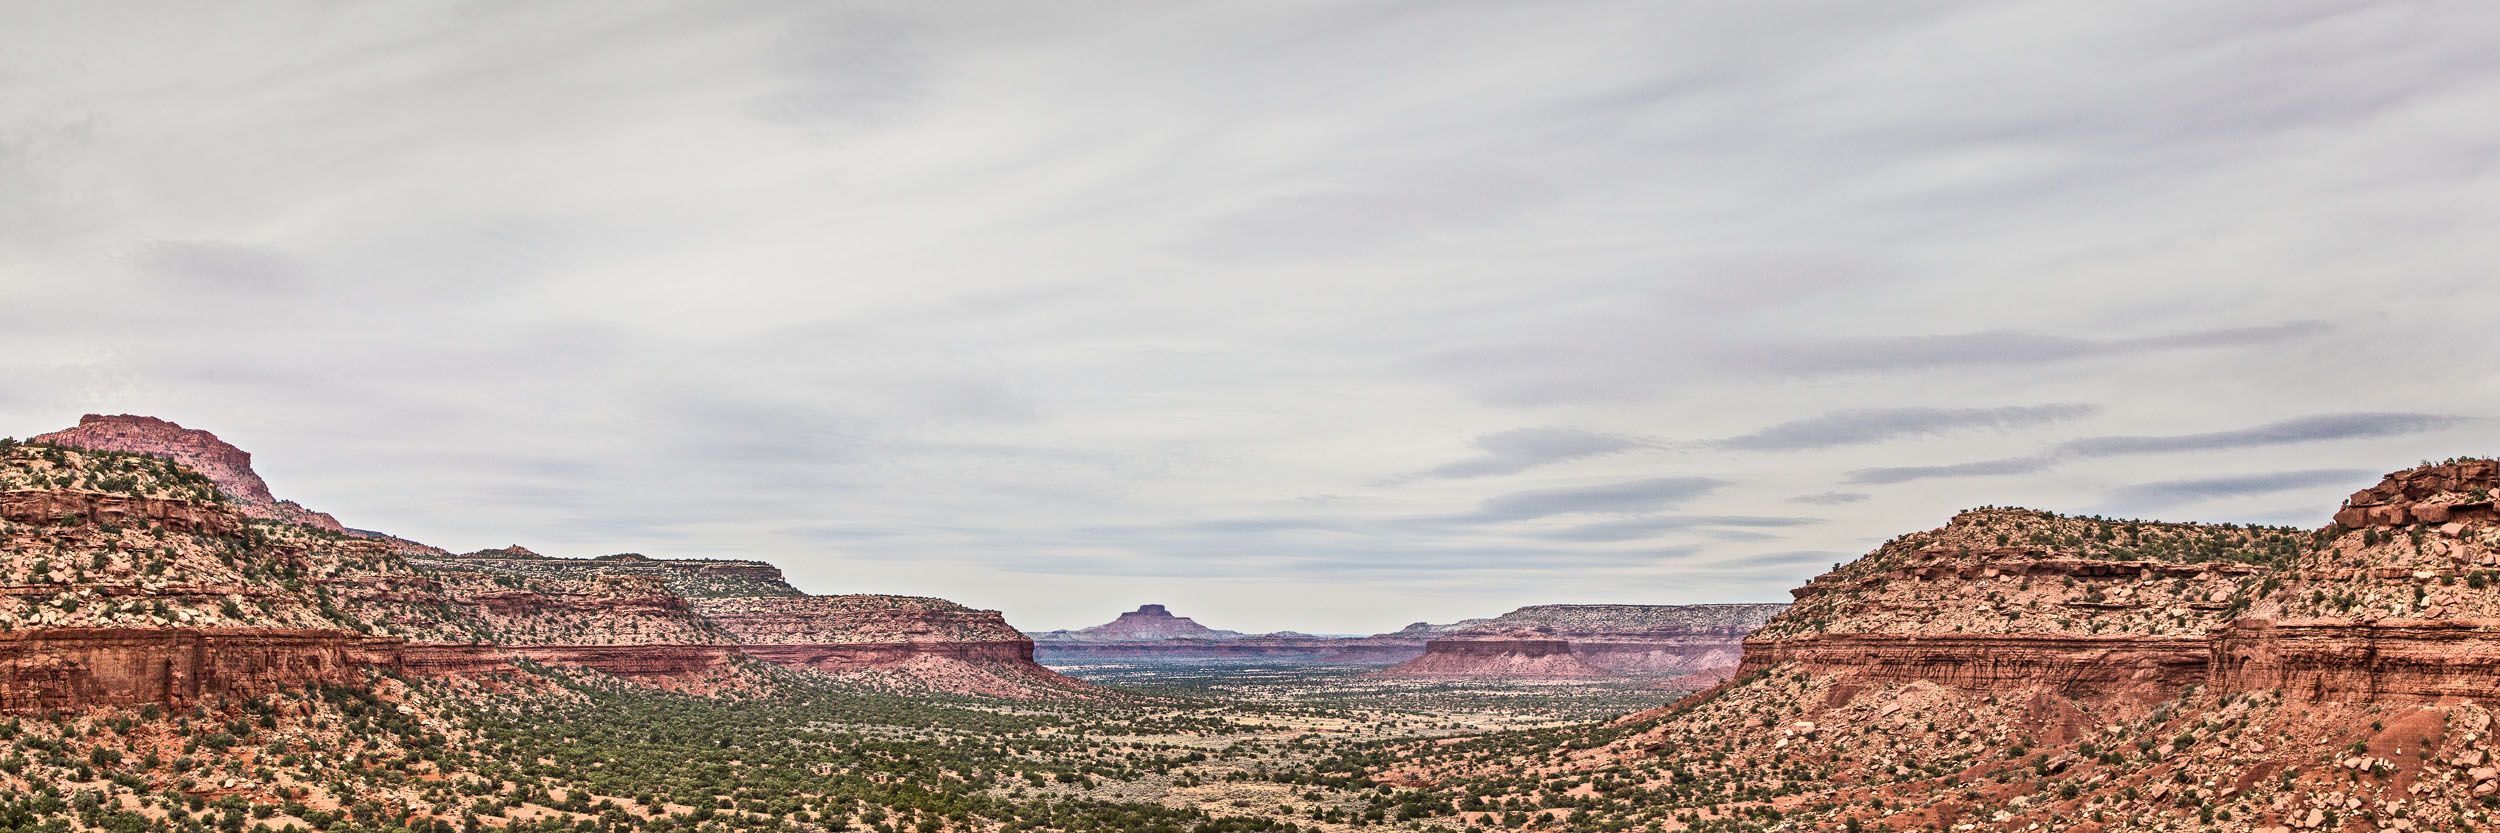 MG_3893_from_panorama_3x1_Fry_Canyon - looking westward from FC.jpg